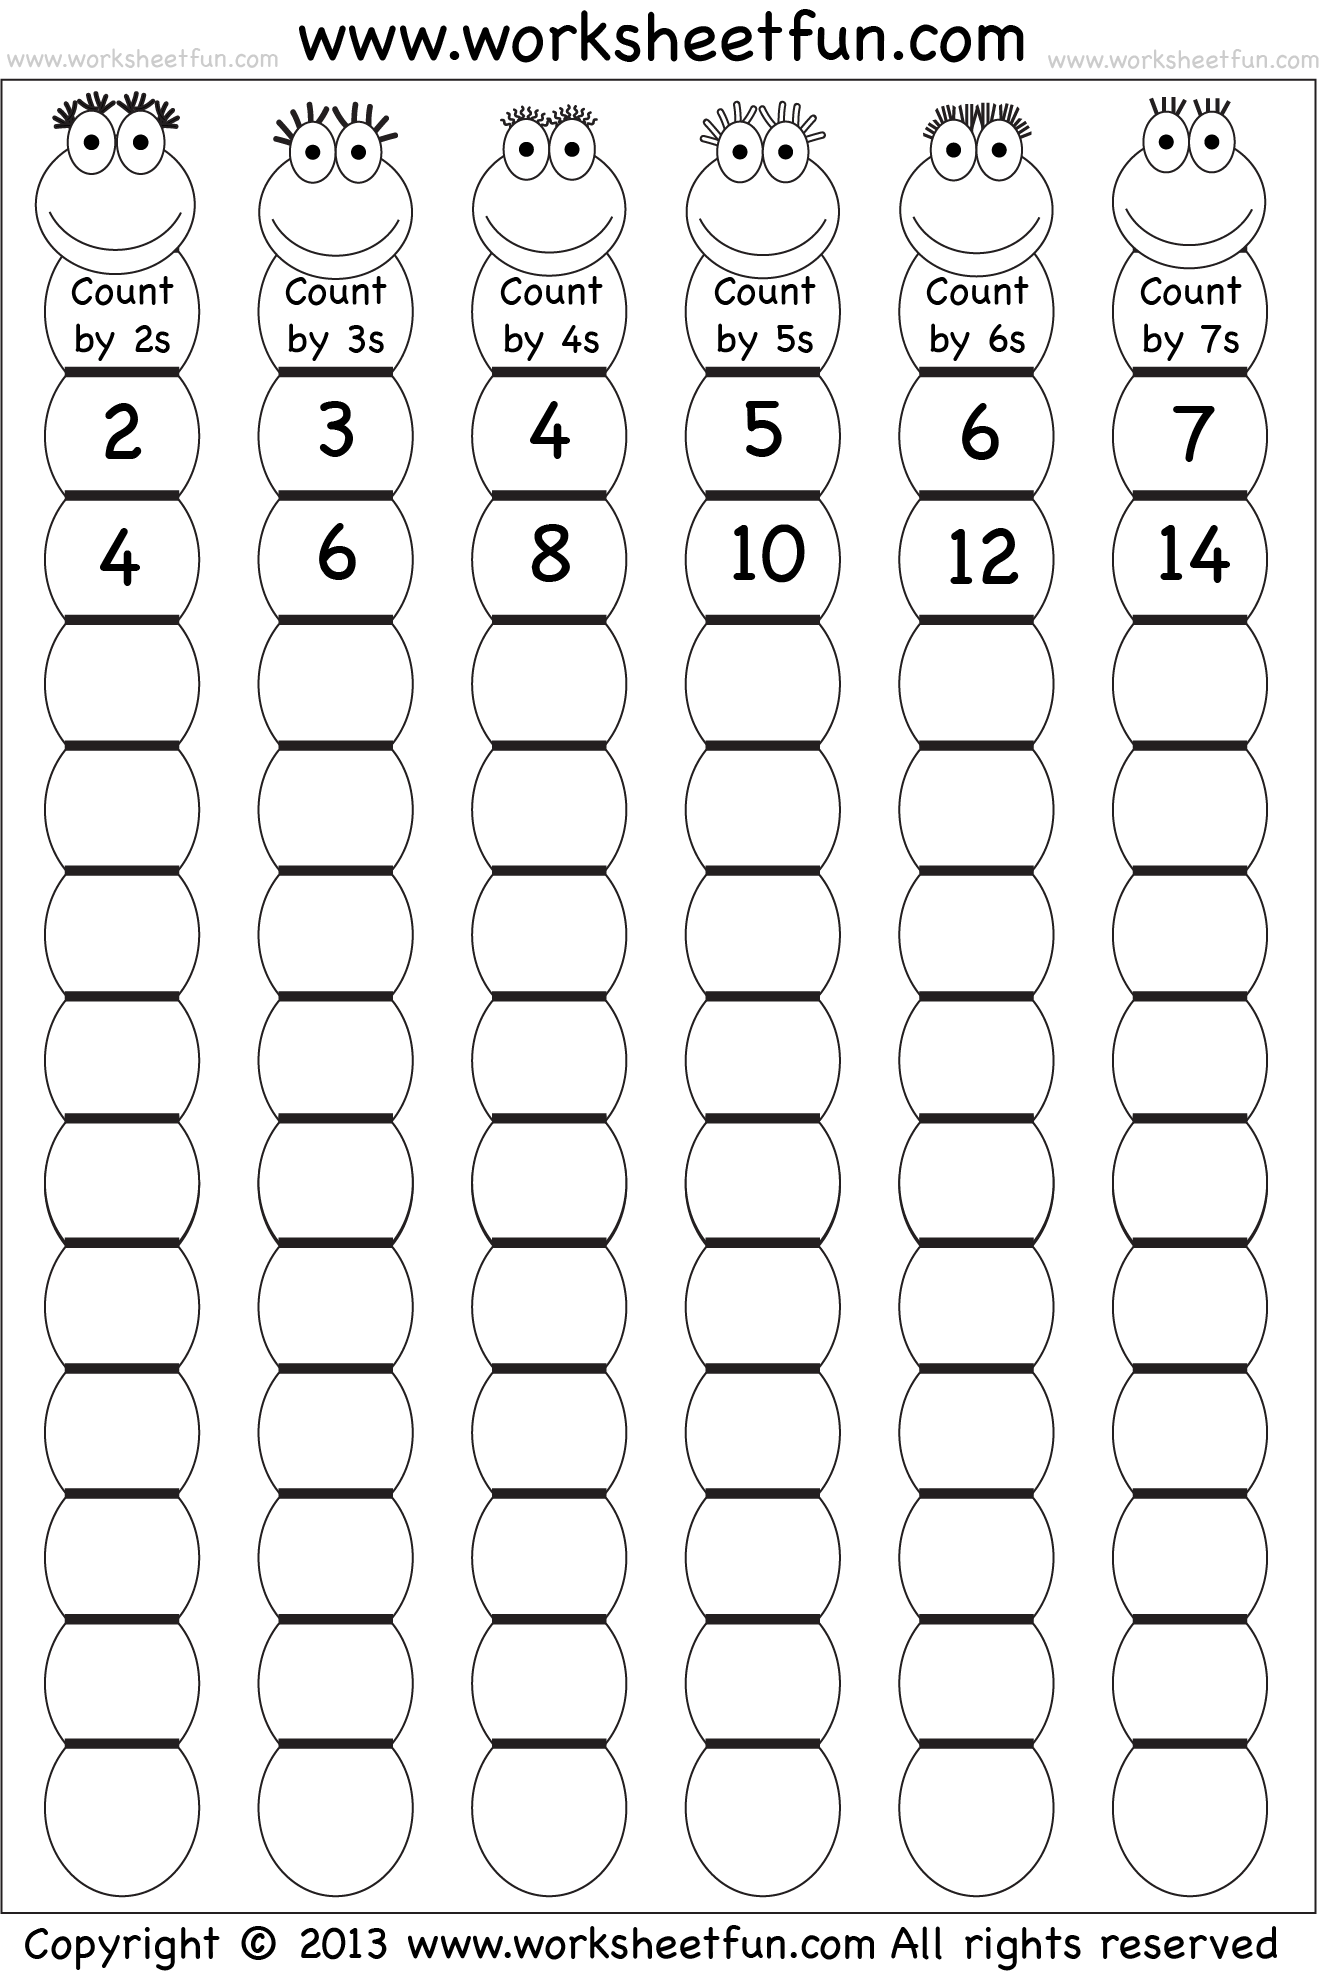 Worksheets Skip Counting Worksheet para mis amigos de los naomeros matematika pinterest skip counting by 6 and can be used as an outdoor activity where students have to jump leap hop etc through